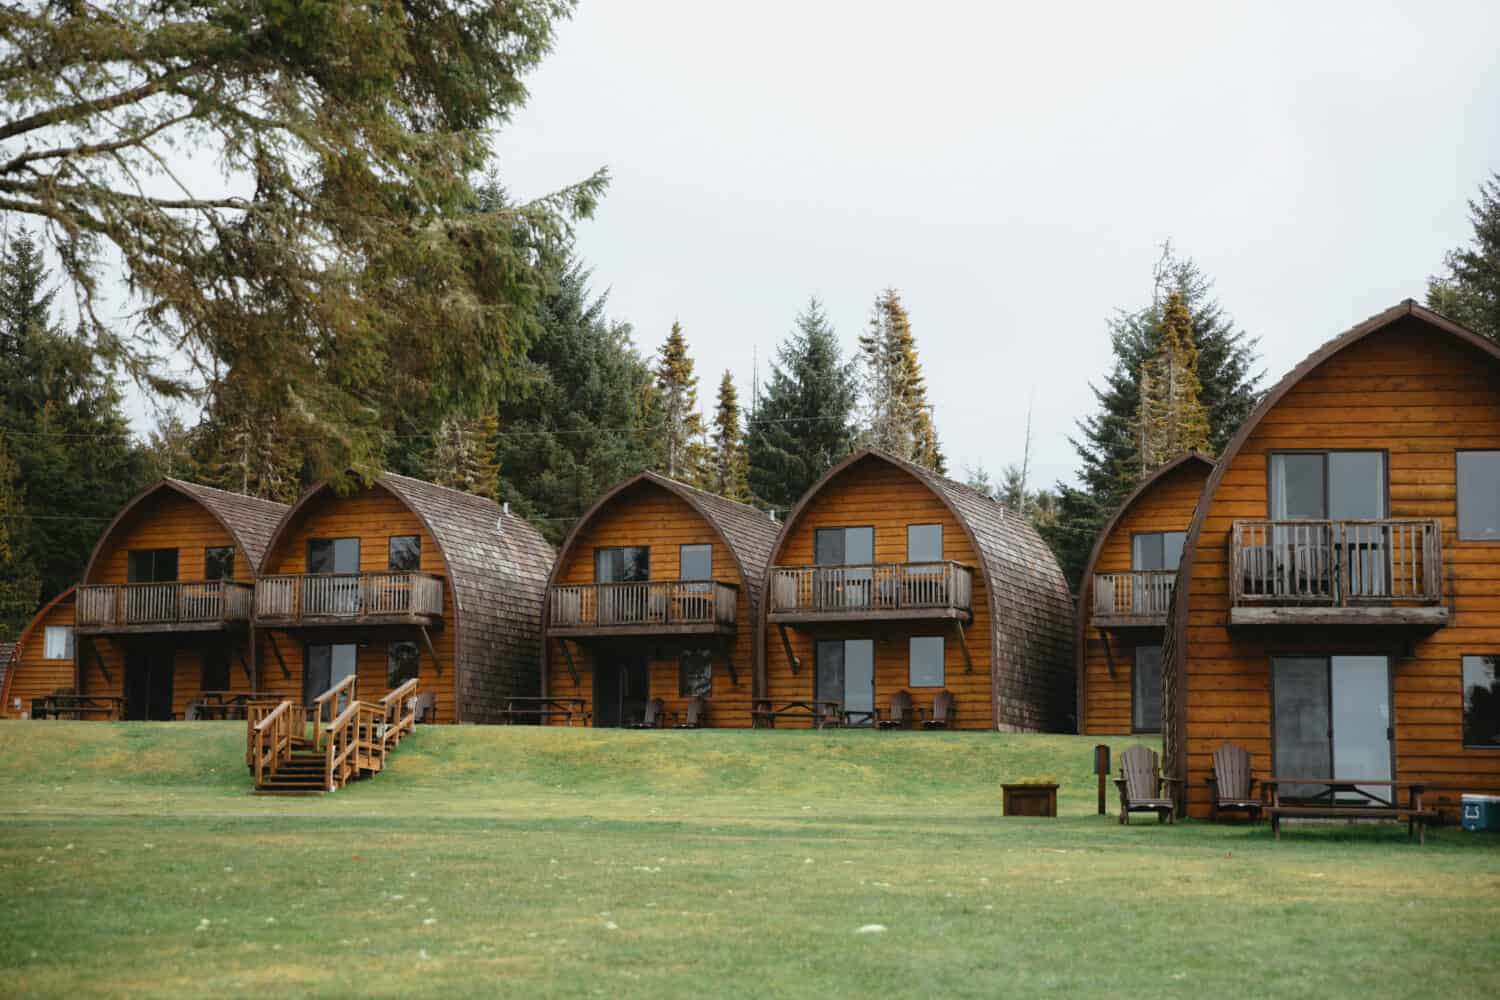 Ocean Village Resort Cabins in Tofino, BC